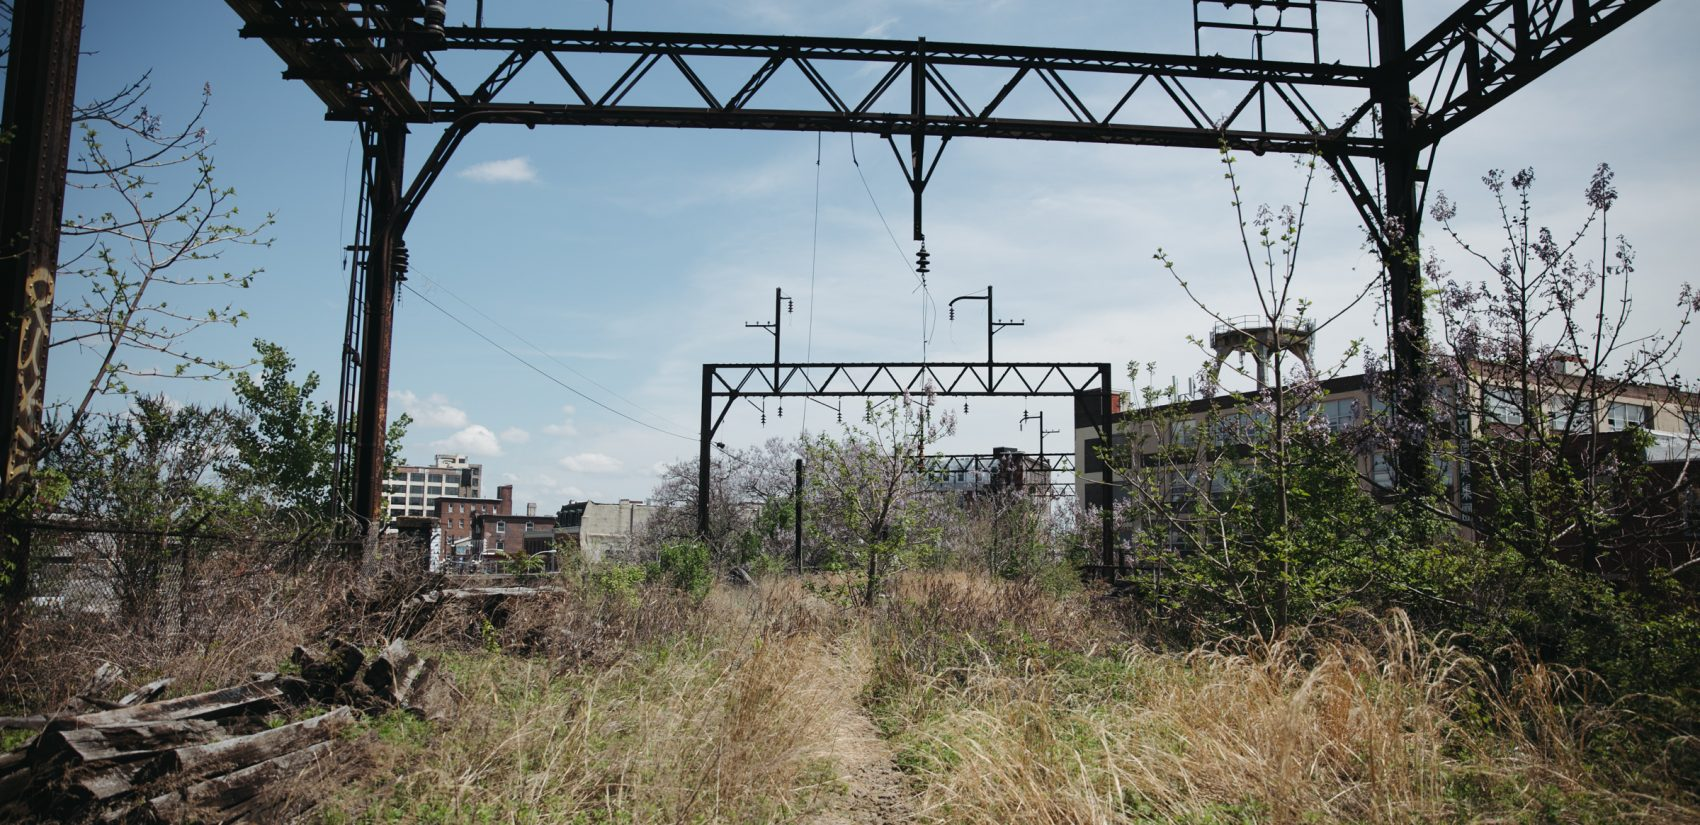 Much of the Reading viaduct remains a feral landscape. It is owned by Reading International. (Neal Santos for PlanPhilly)